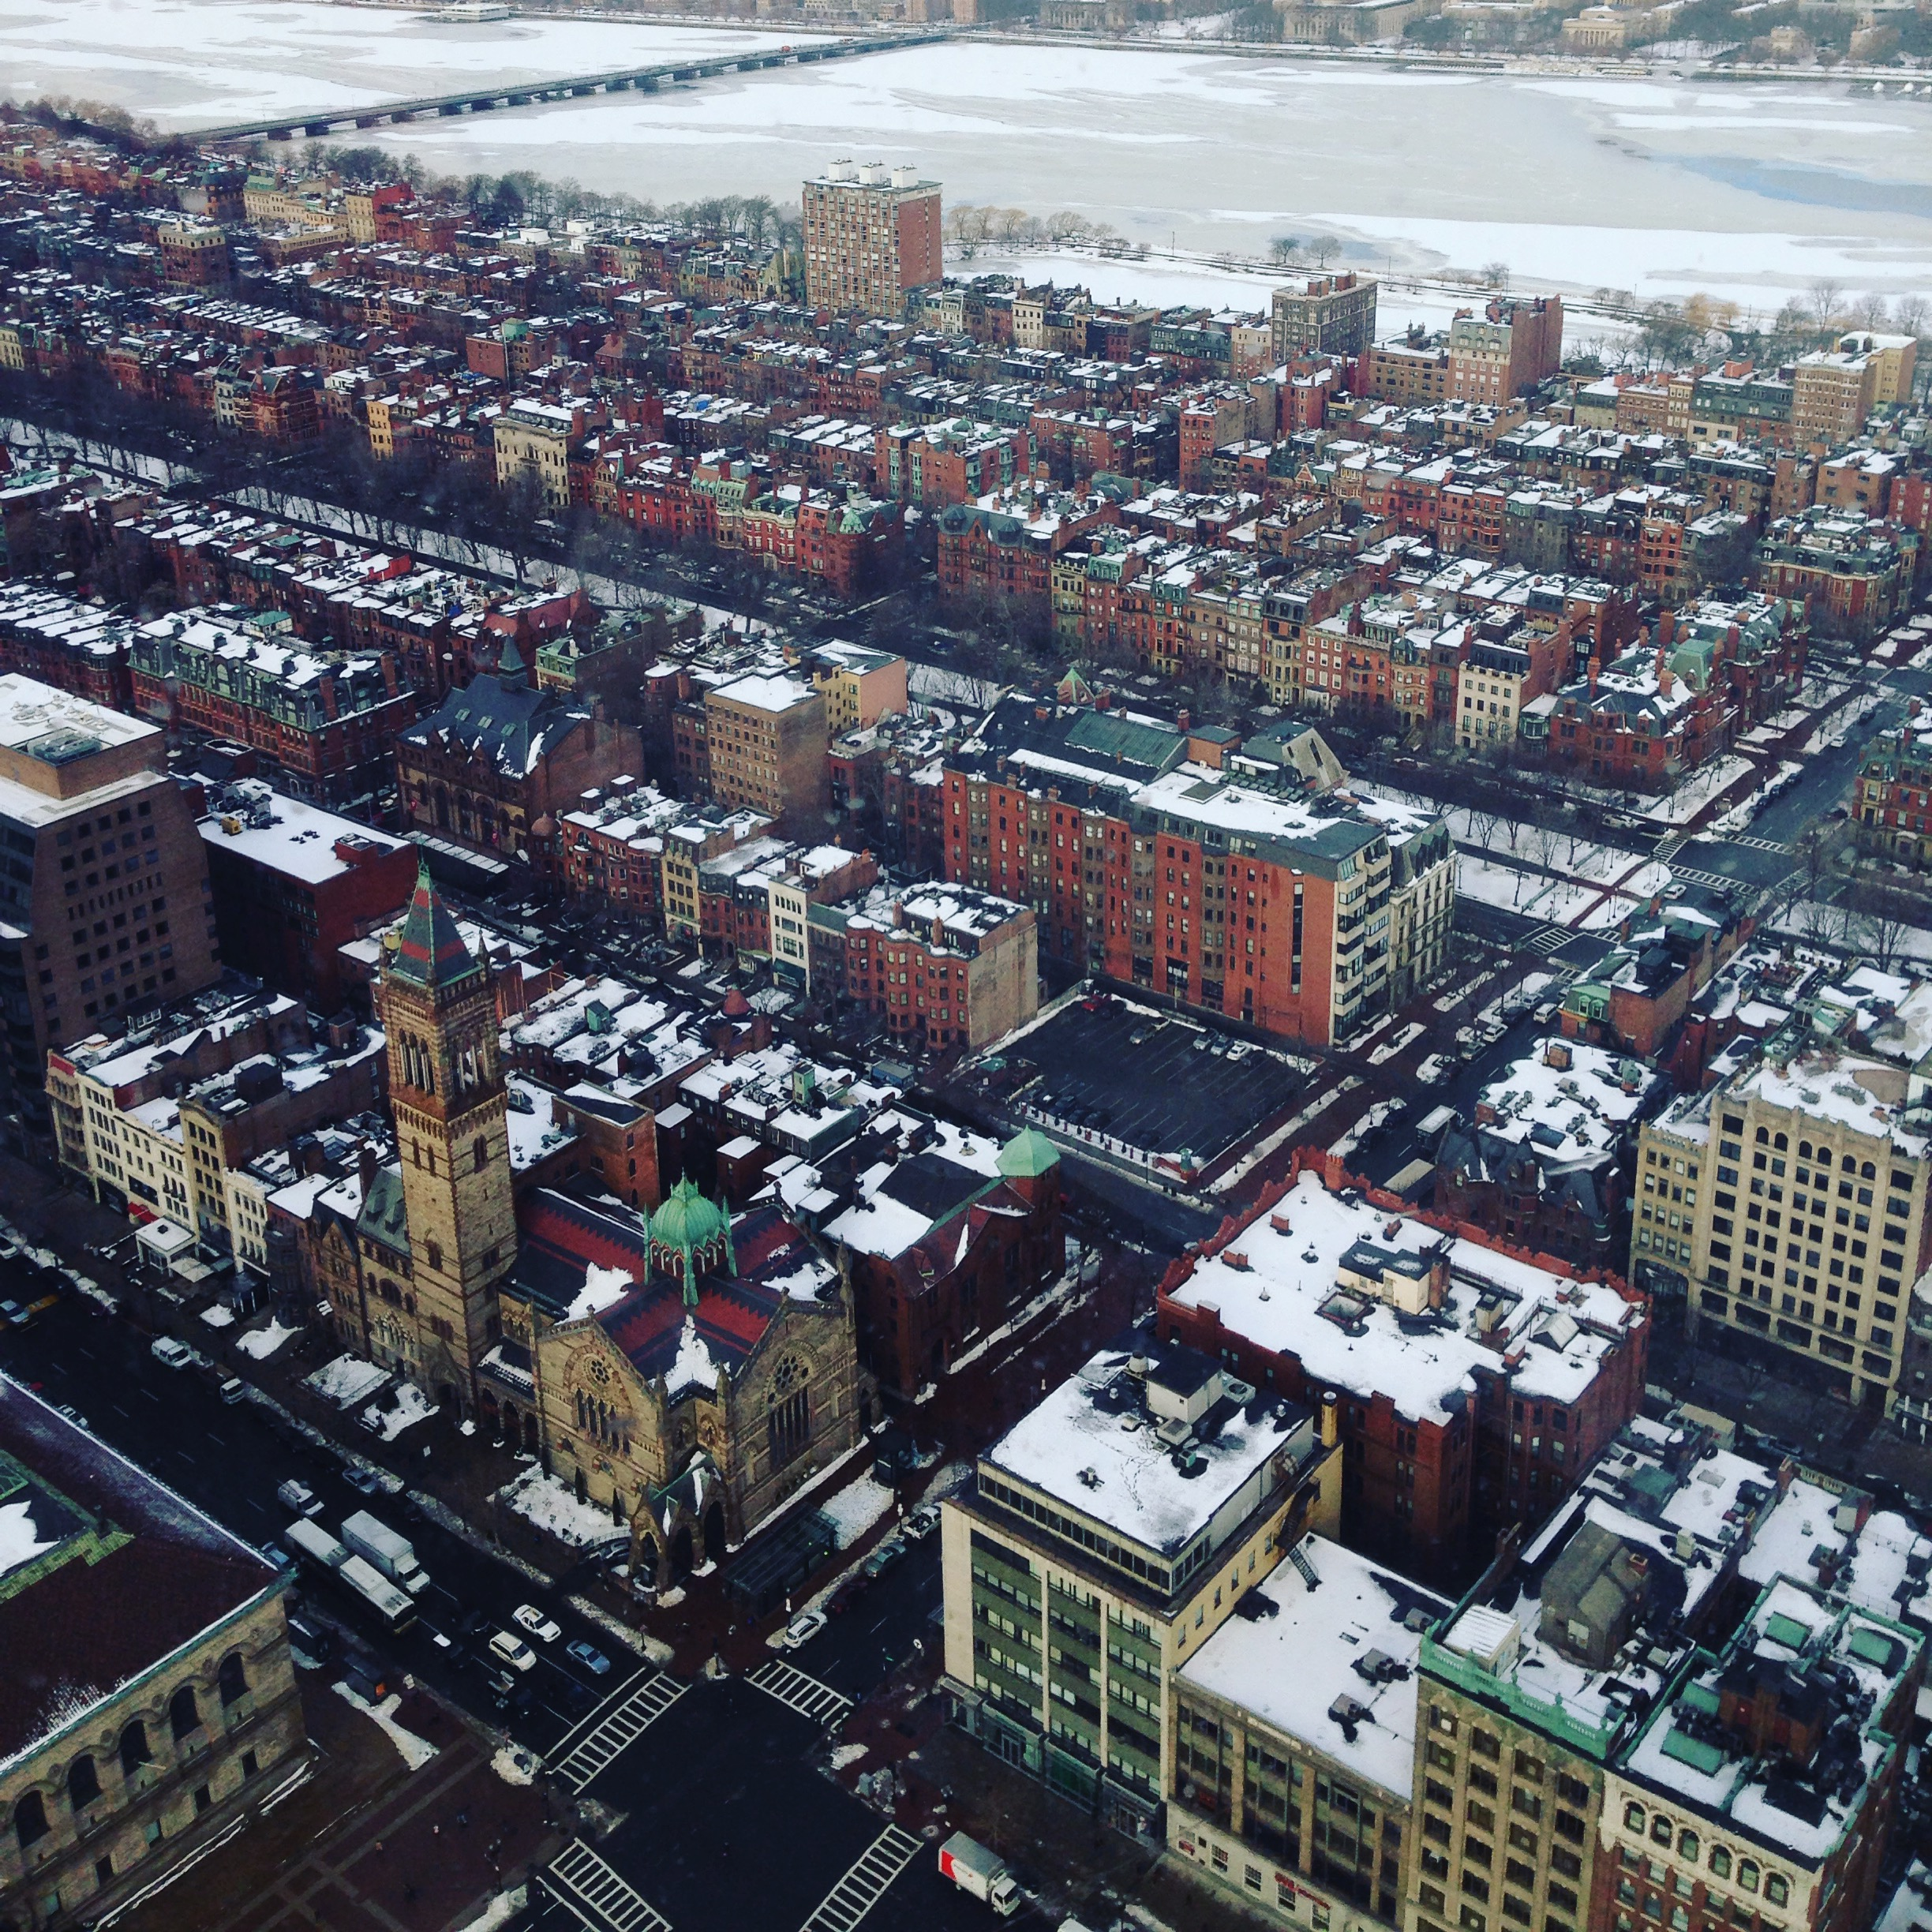 Boston from above. Photo credit - me.